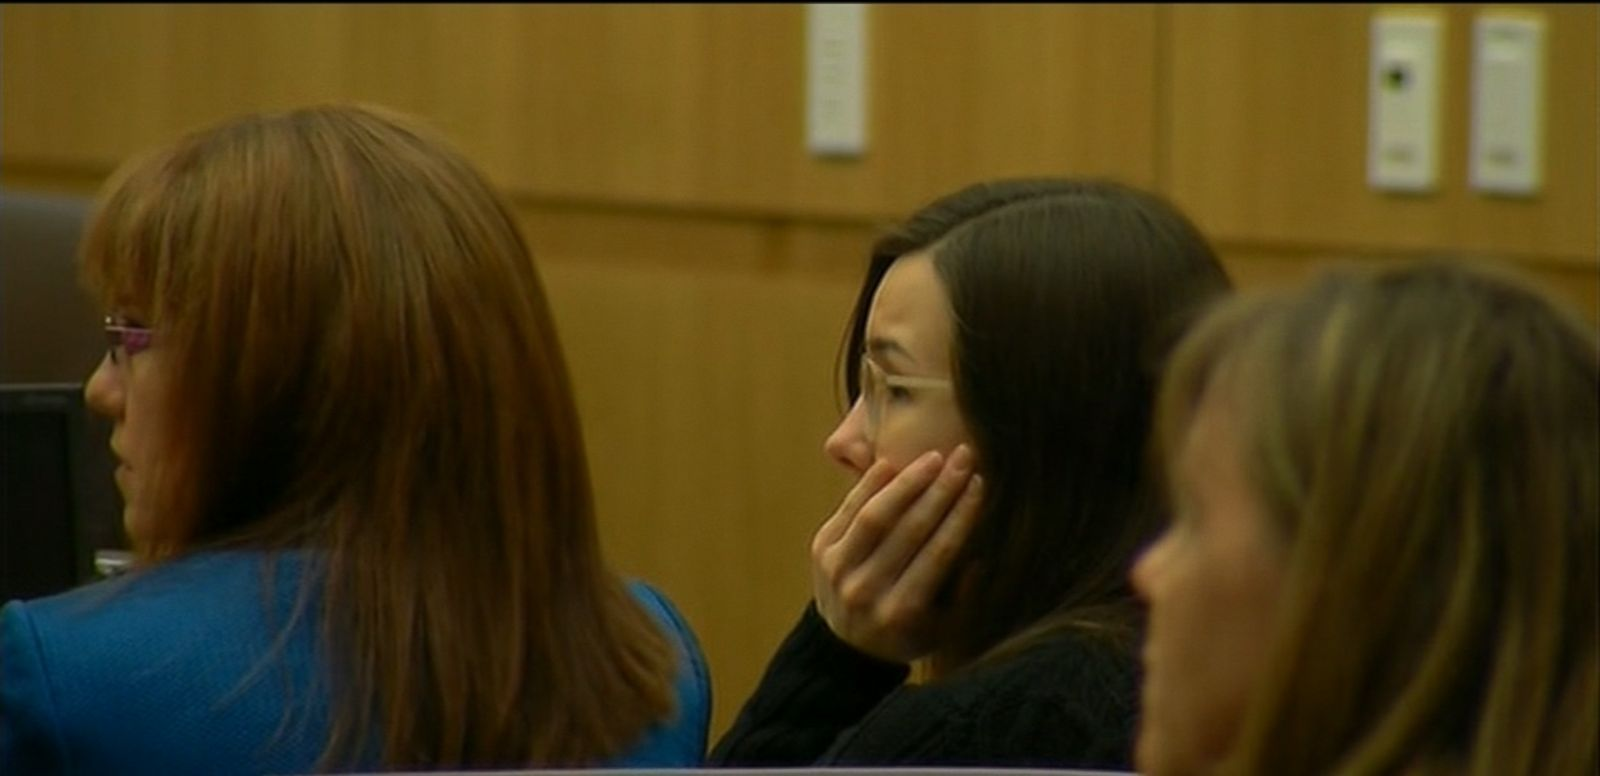 VIDEO: Eleven of the 12 jurors spoke out after the judge declared a mistrial in the case, claiming one juror was holding out.